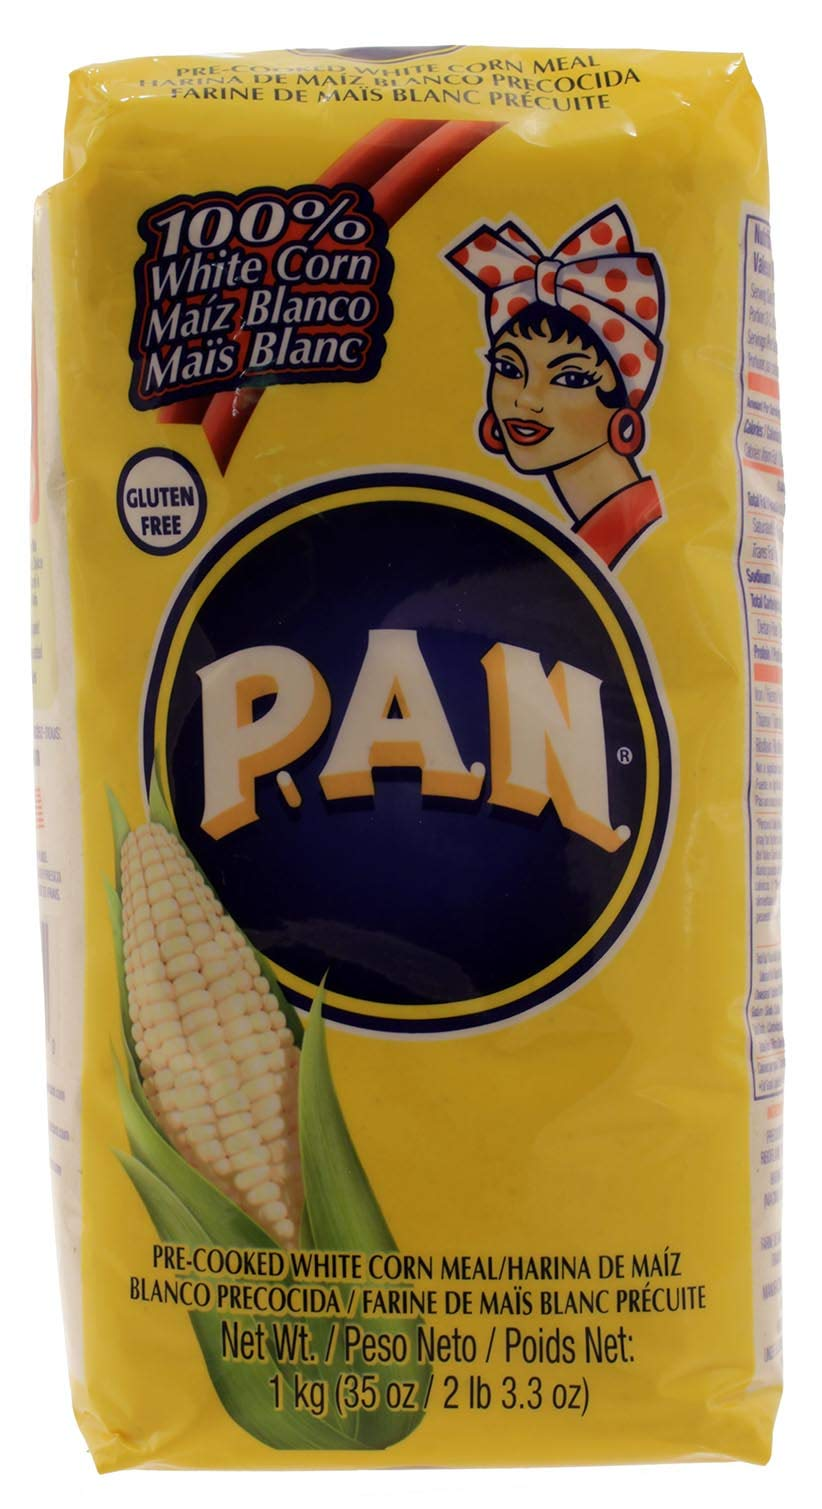 Harina P.a.n. White Corn Meal 1 kg(35 oz/2 lb 3.3 oz)